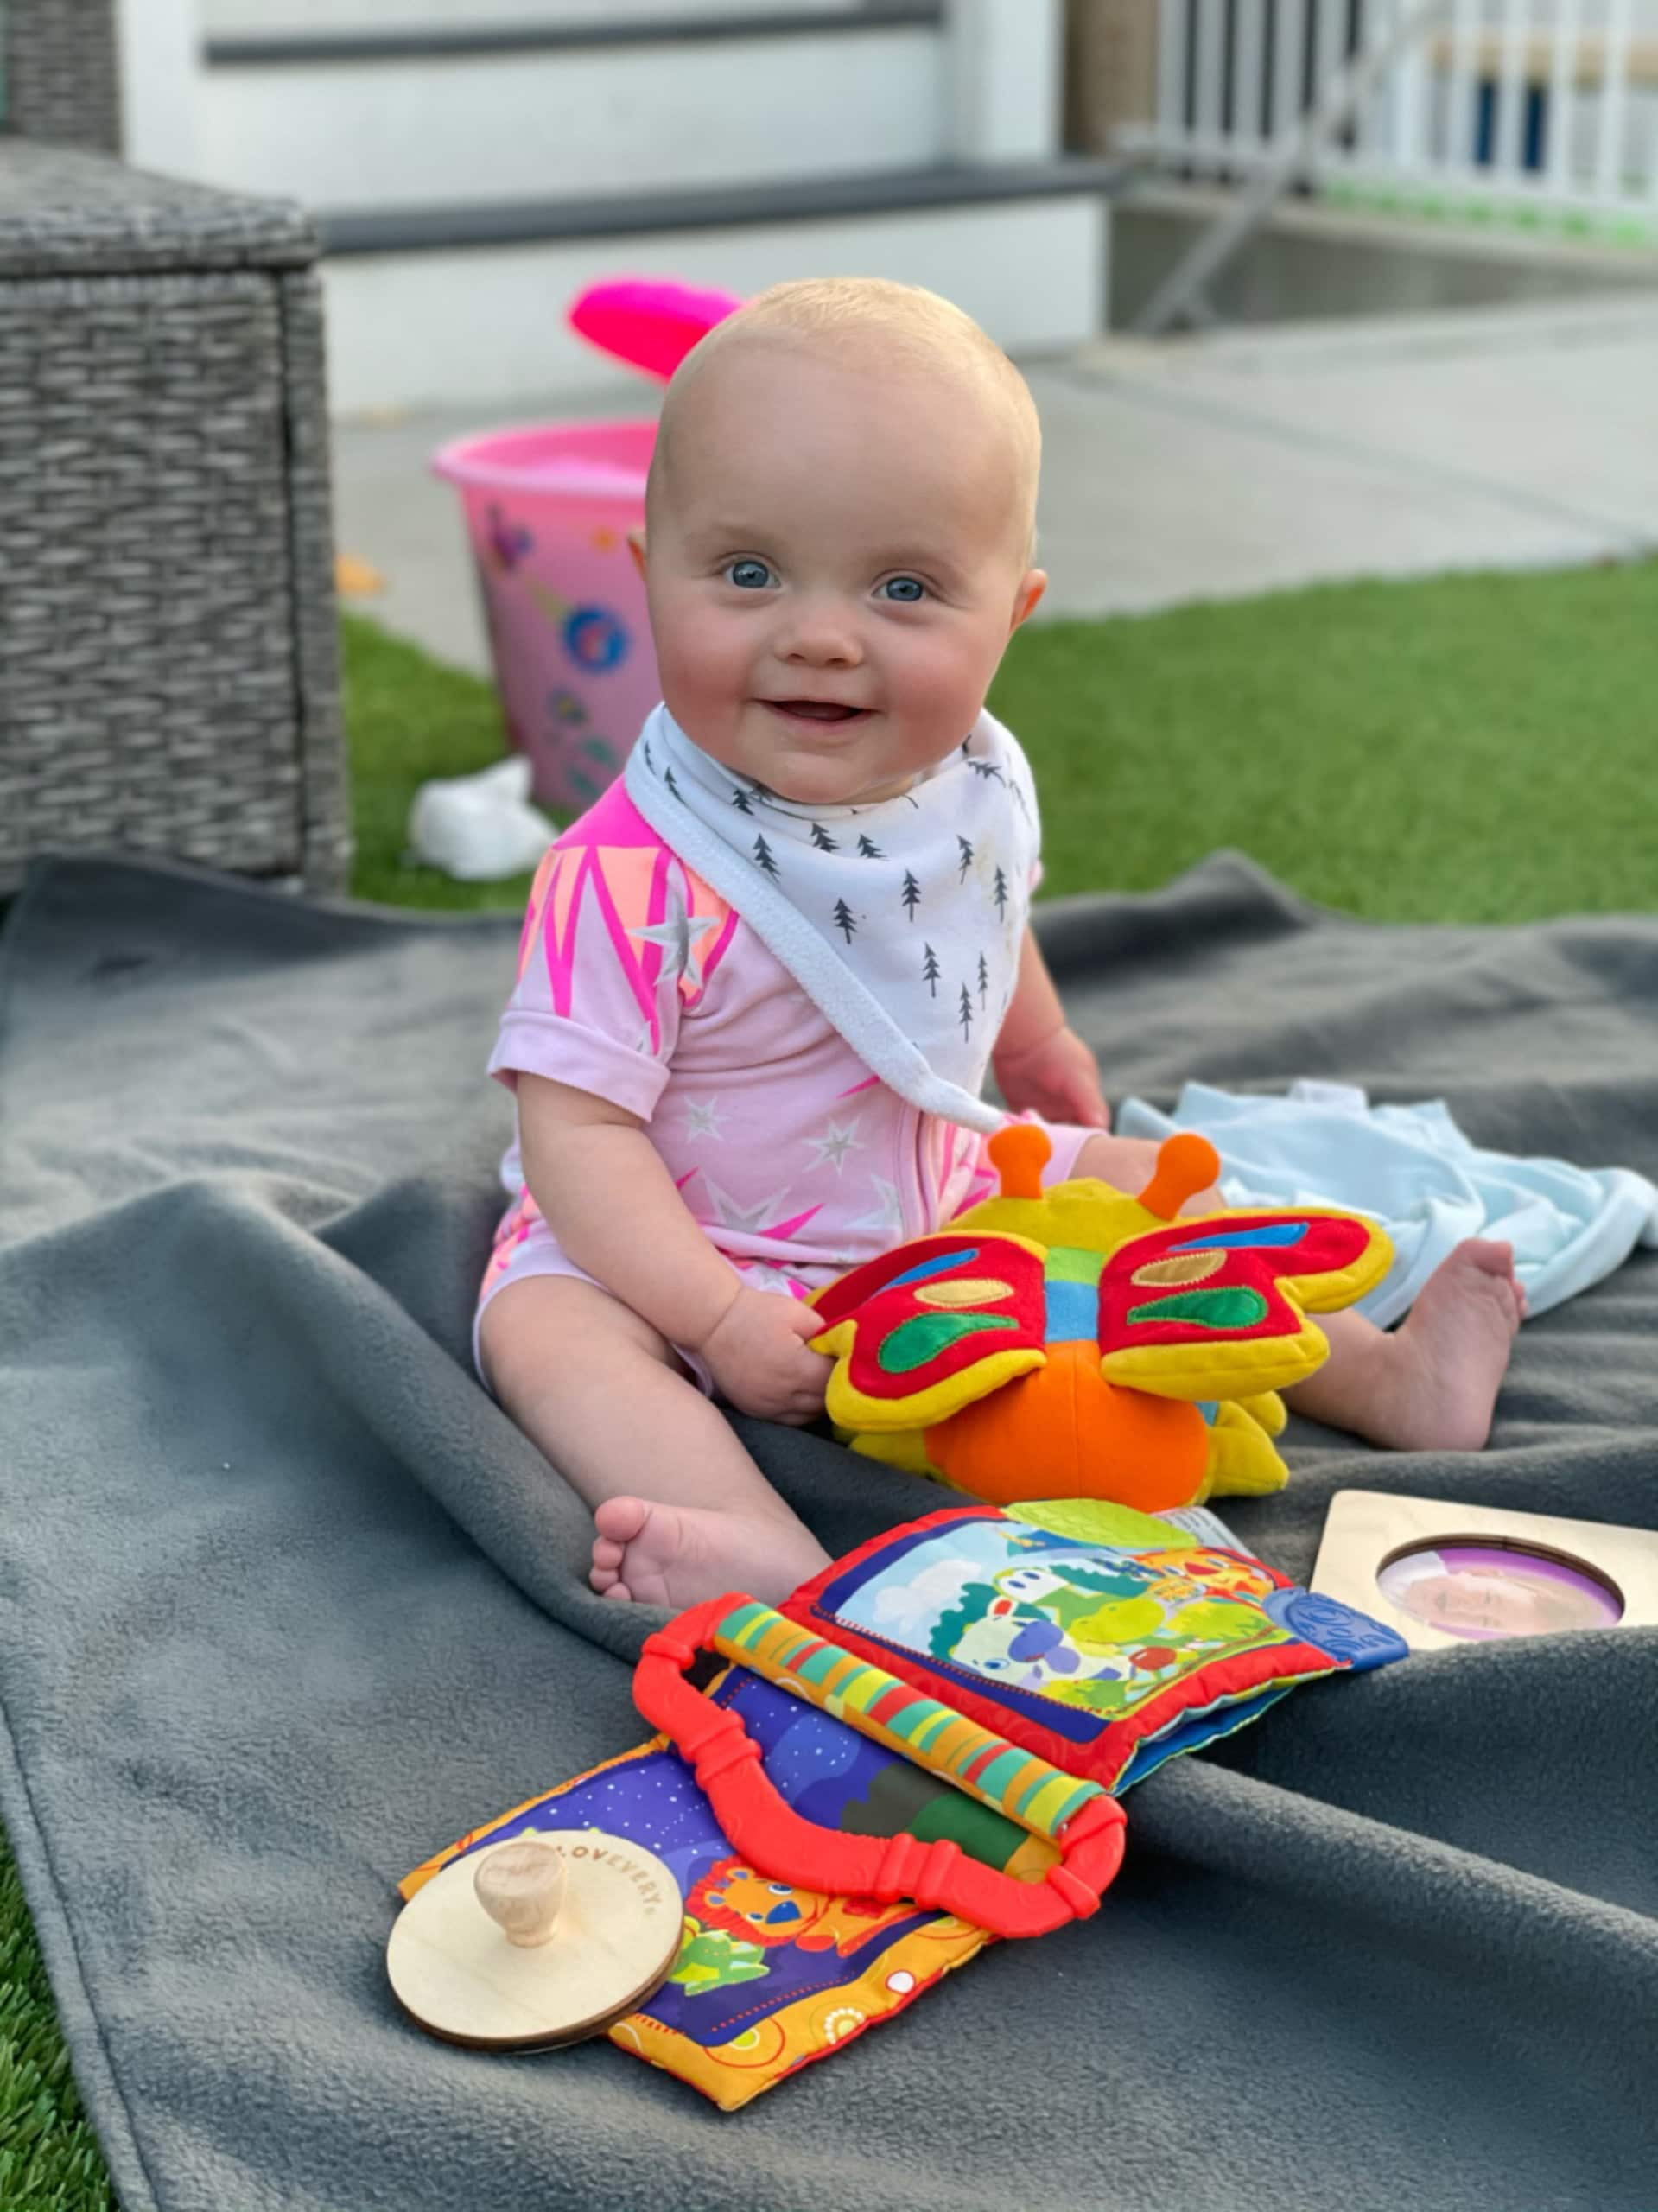 Rory sitting up on her own in November 2020